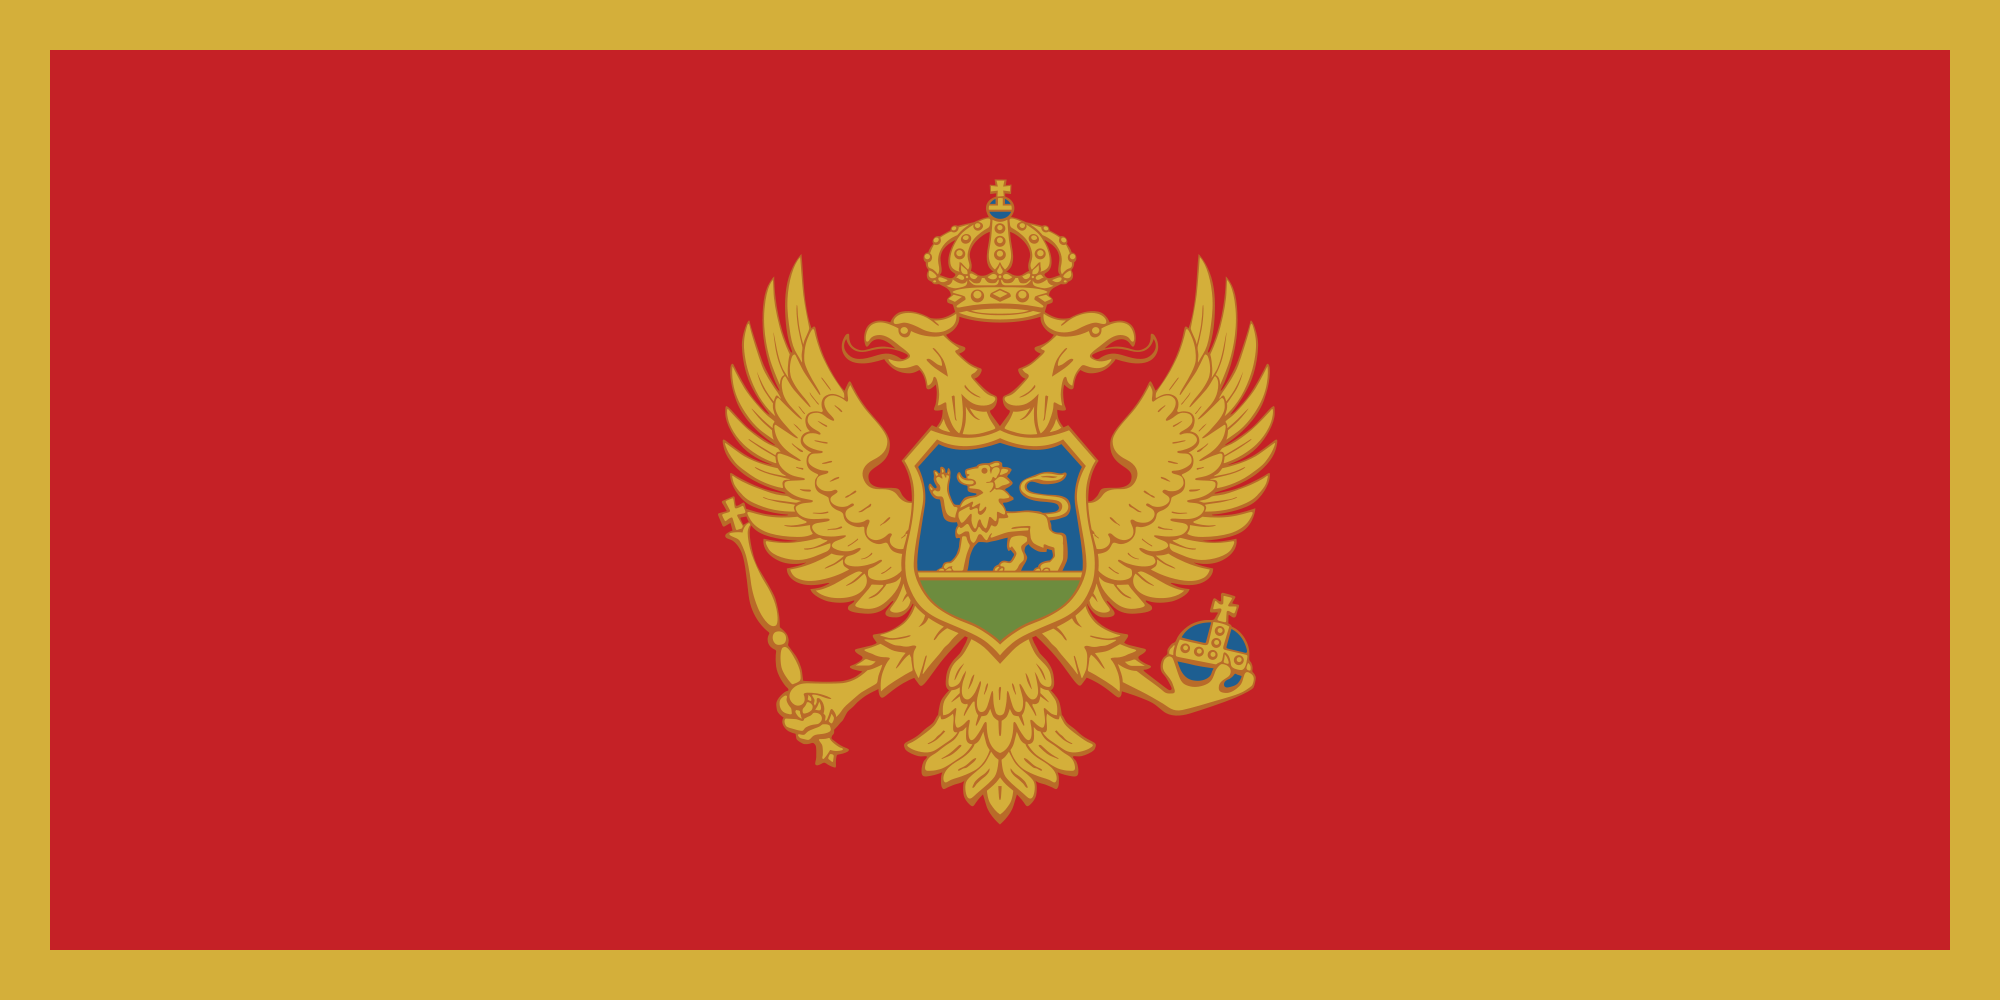 Flag Of Montenegro Backgrounds on Wallpapers Vista